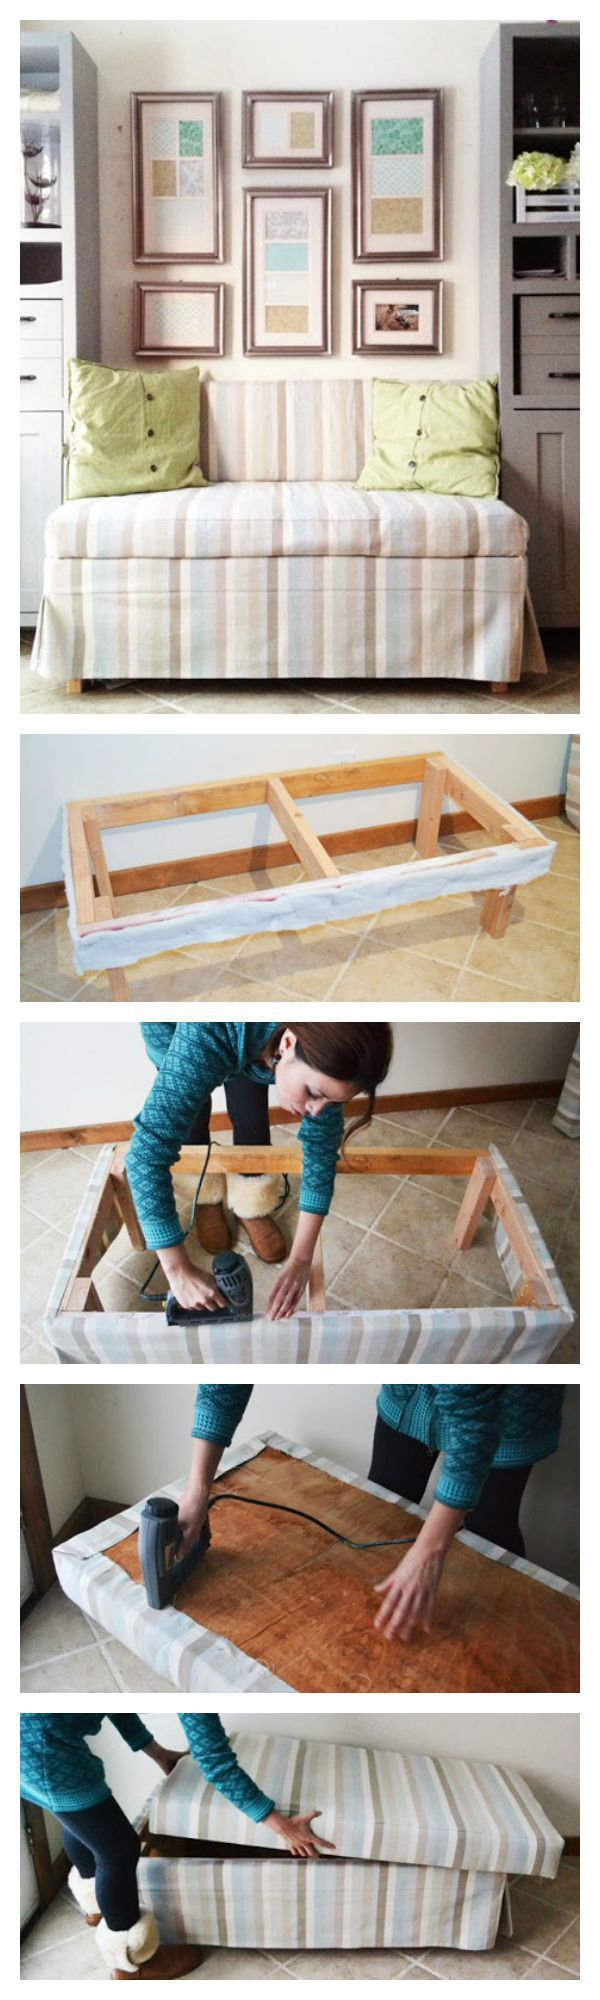 DIY Upholstered Banquette Seat: Free Step By Step Plans To Build This  Upholstered Banquette Seat.